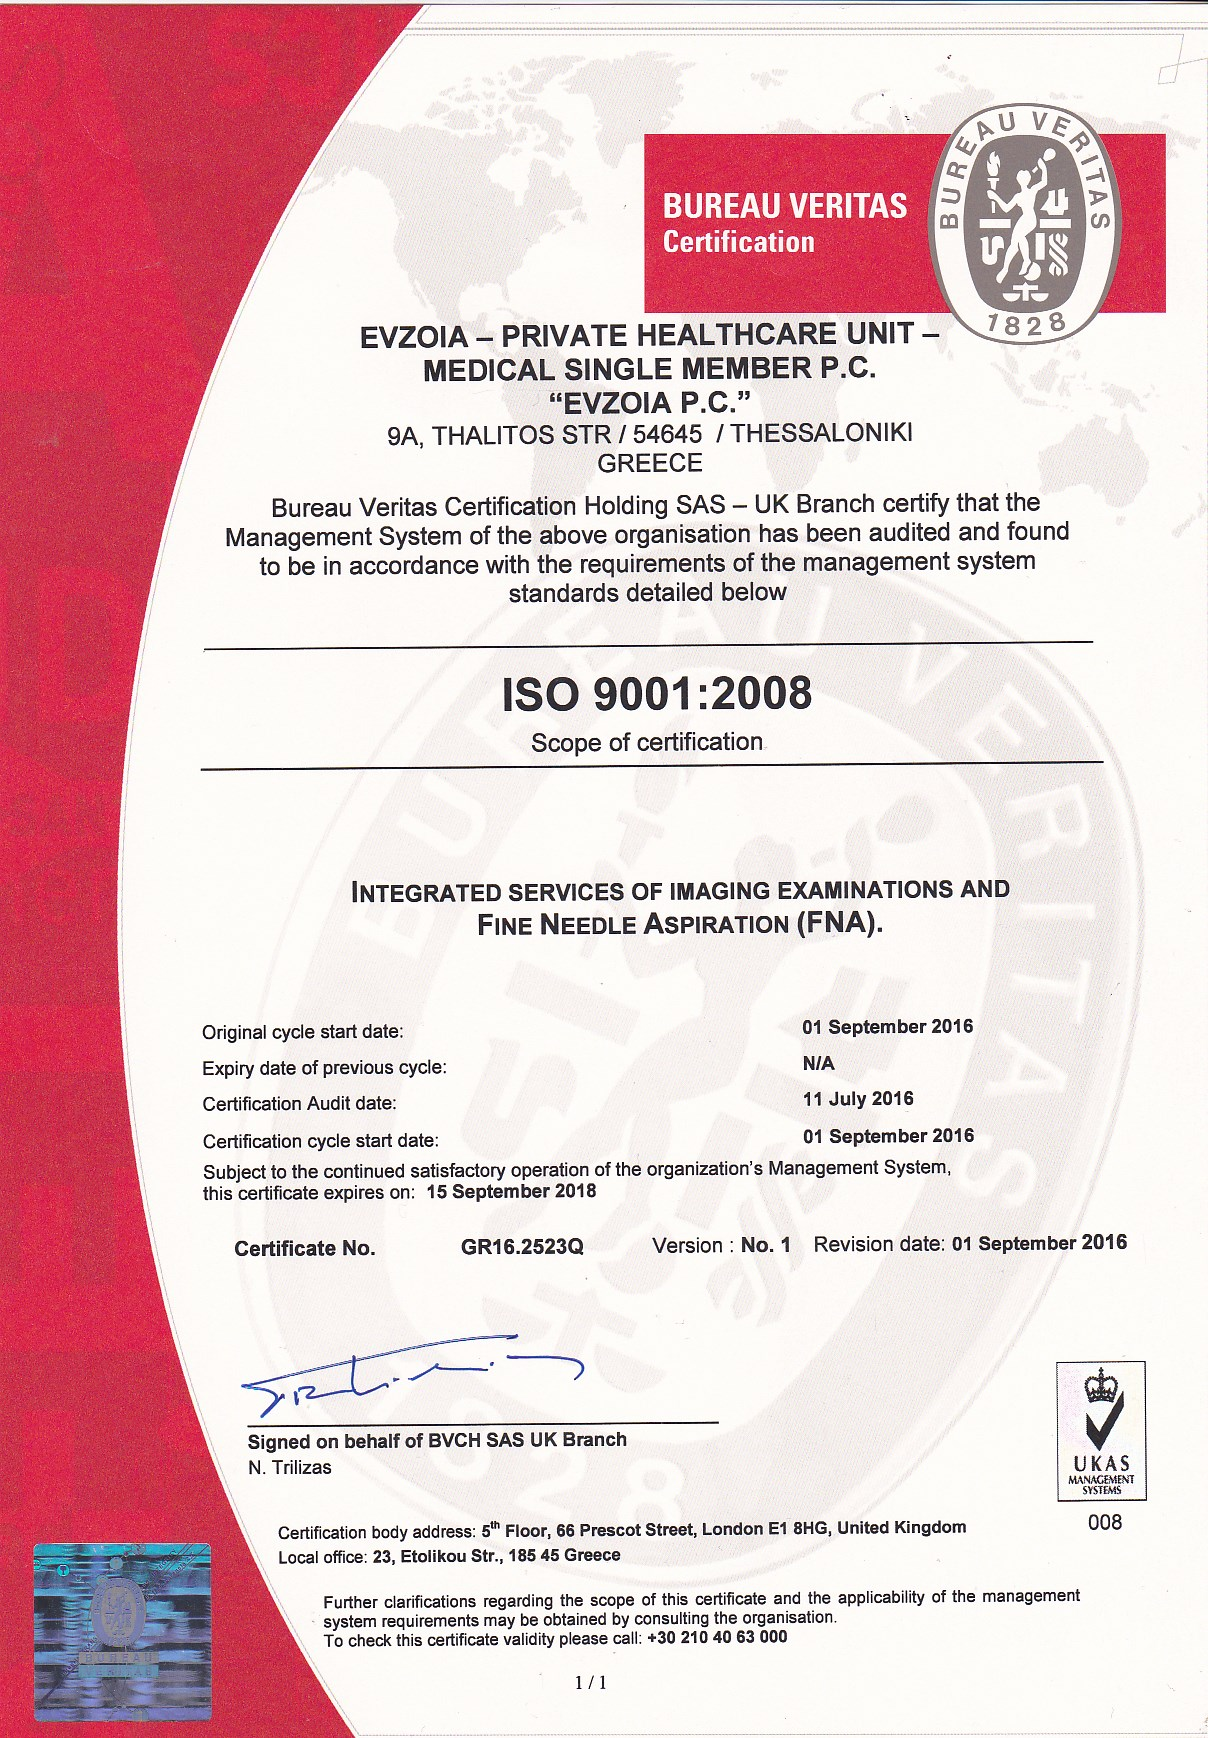 Evzoia Certification ISO9001:2008